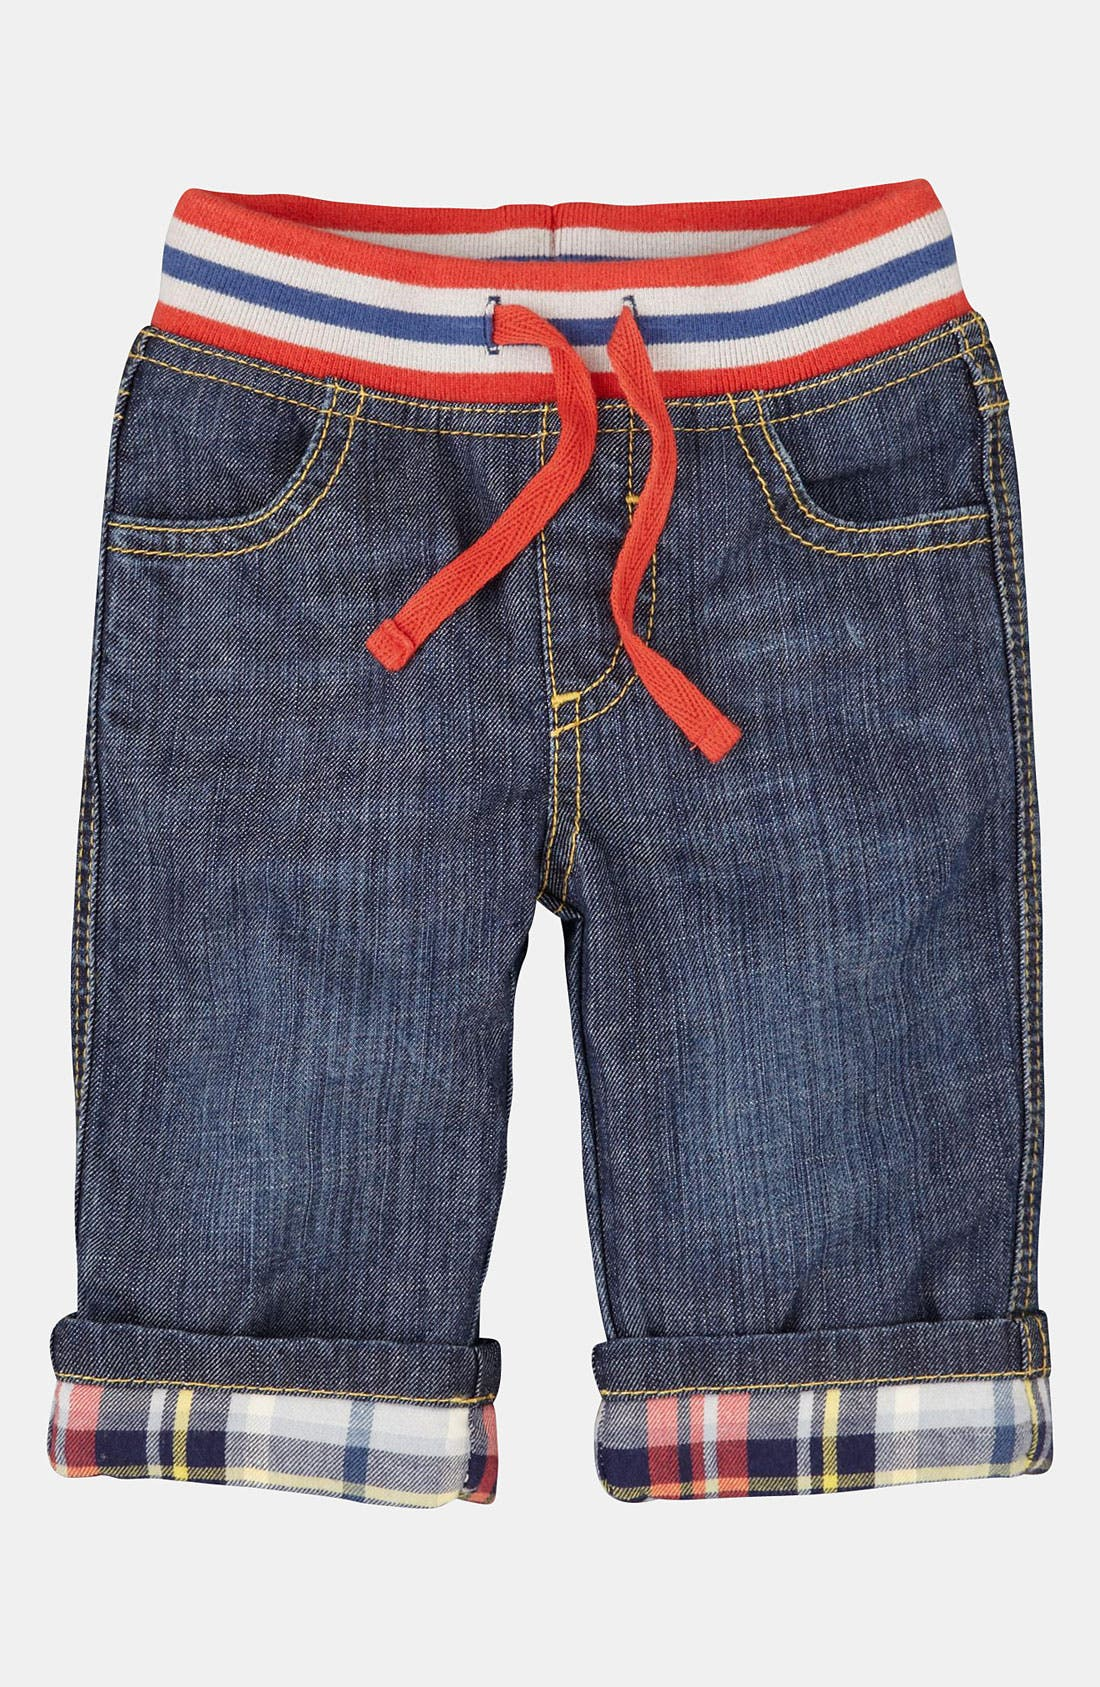 Main Image - Mini Boden 'Baby' Jeans (Infant)